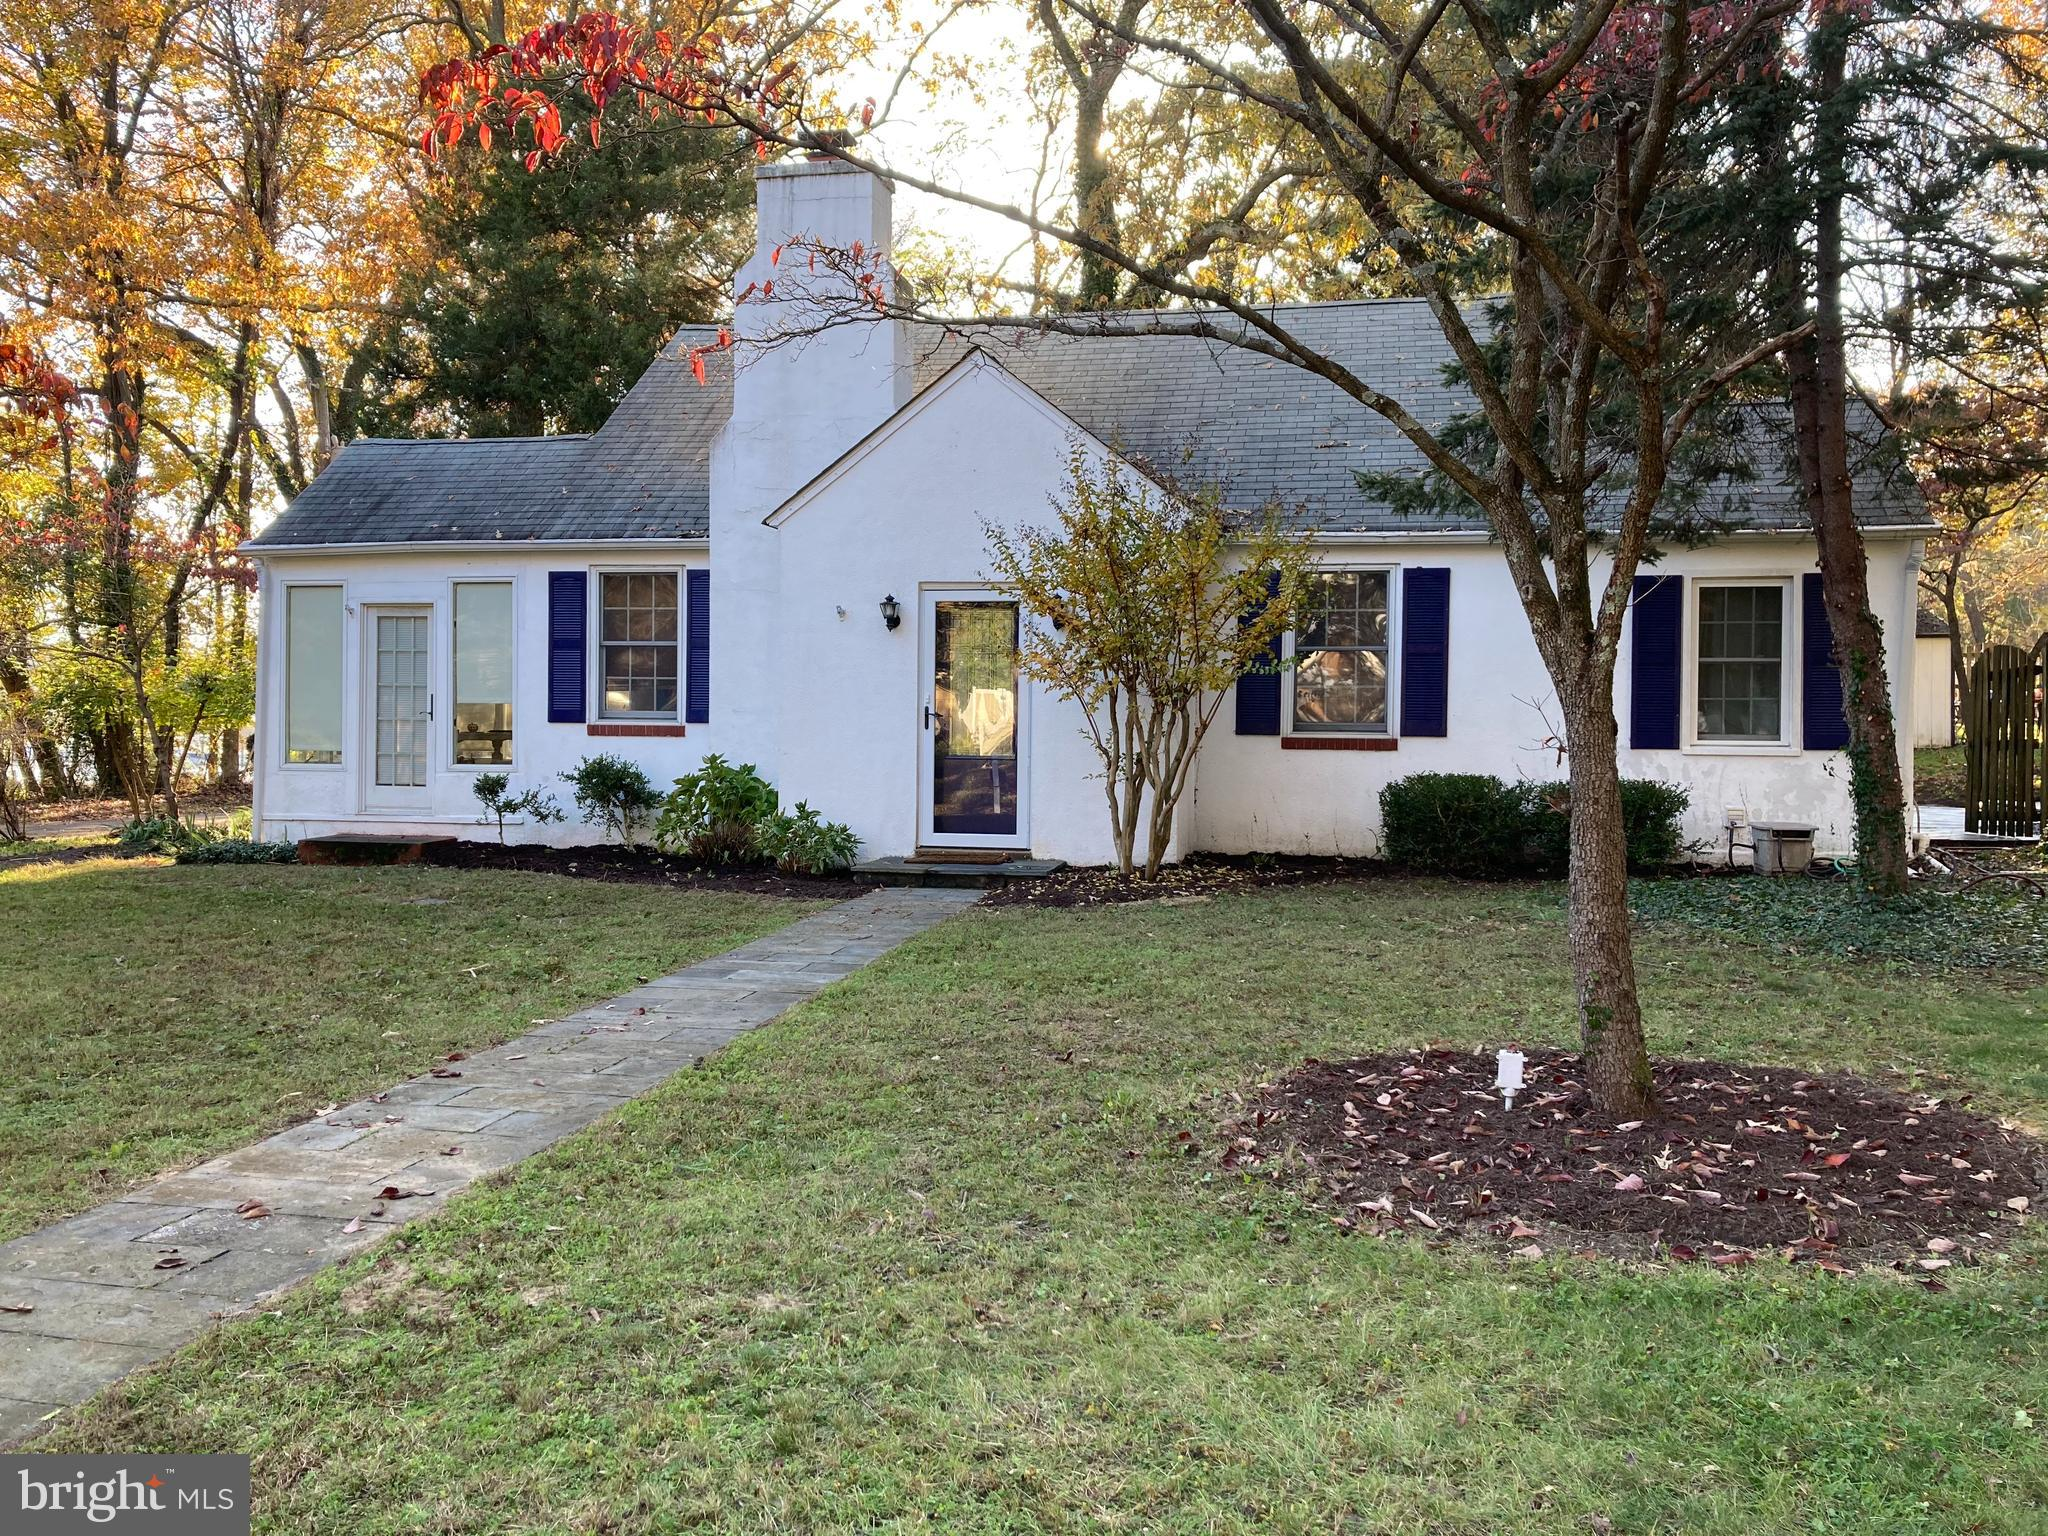 Fall in love with this Charming Cape Cod located right across from the Sillery Bay Marina with boat